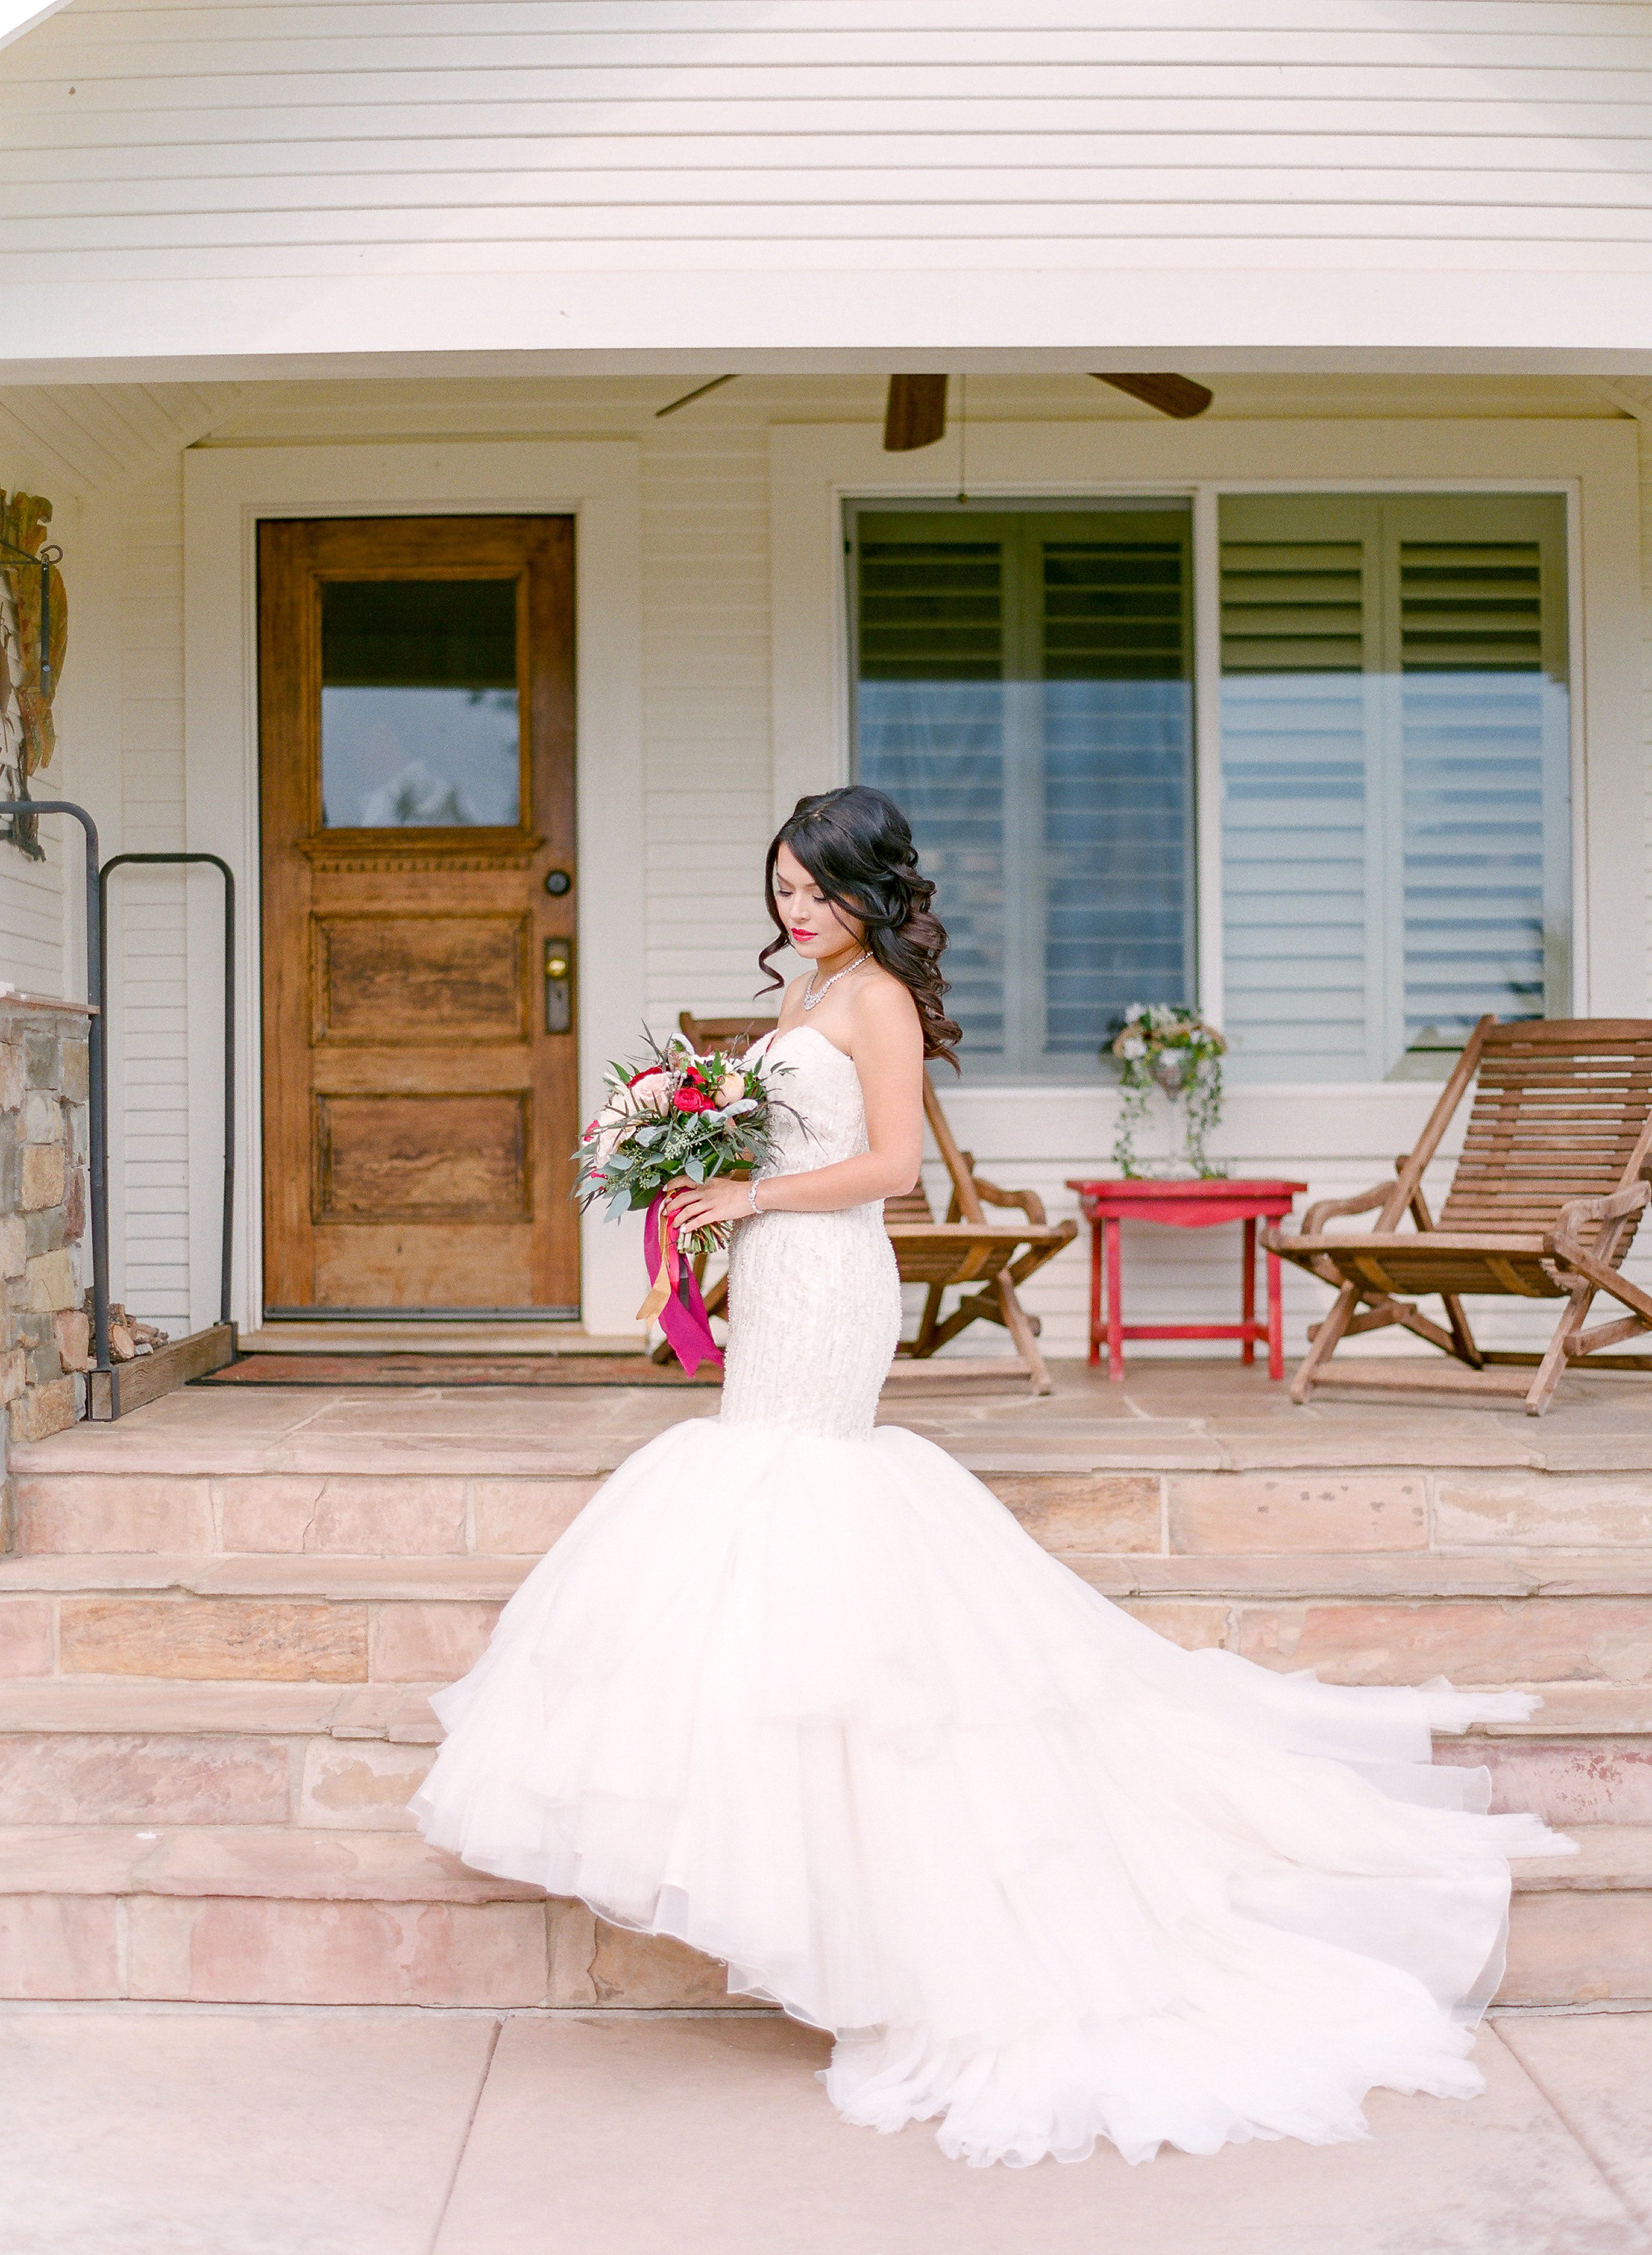 Amador_County_Wedding_Florist_Bouquet_Bride_Romantic_Glamorous_Whimsical_Pink_Burgundy_Eucalyptus_Rancho_Victoria_Vineyard_Northern_California.jpg